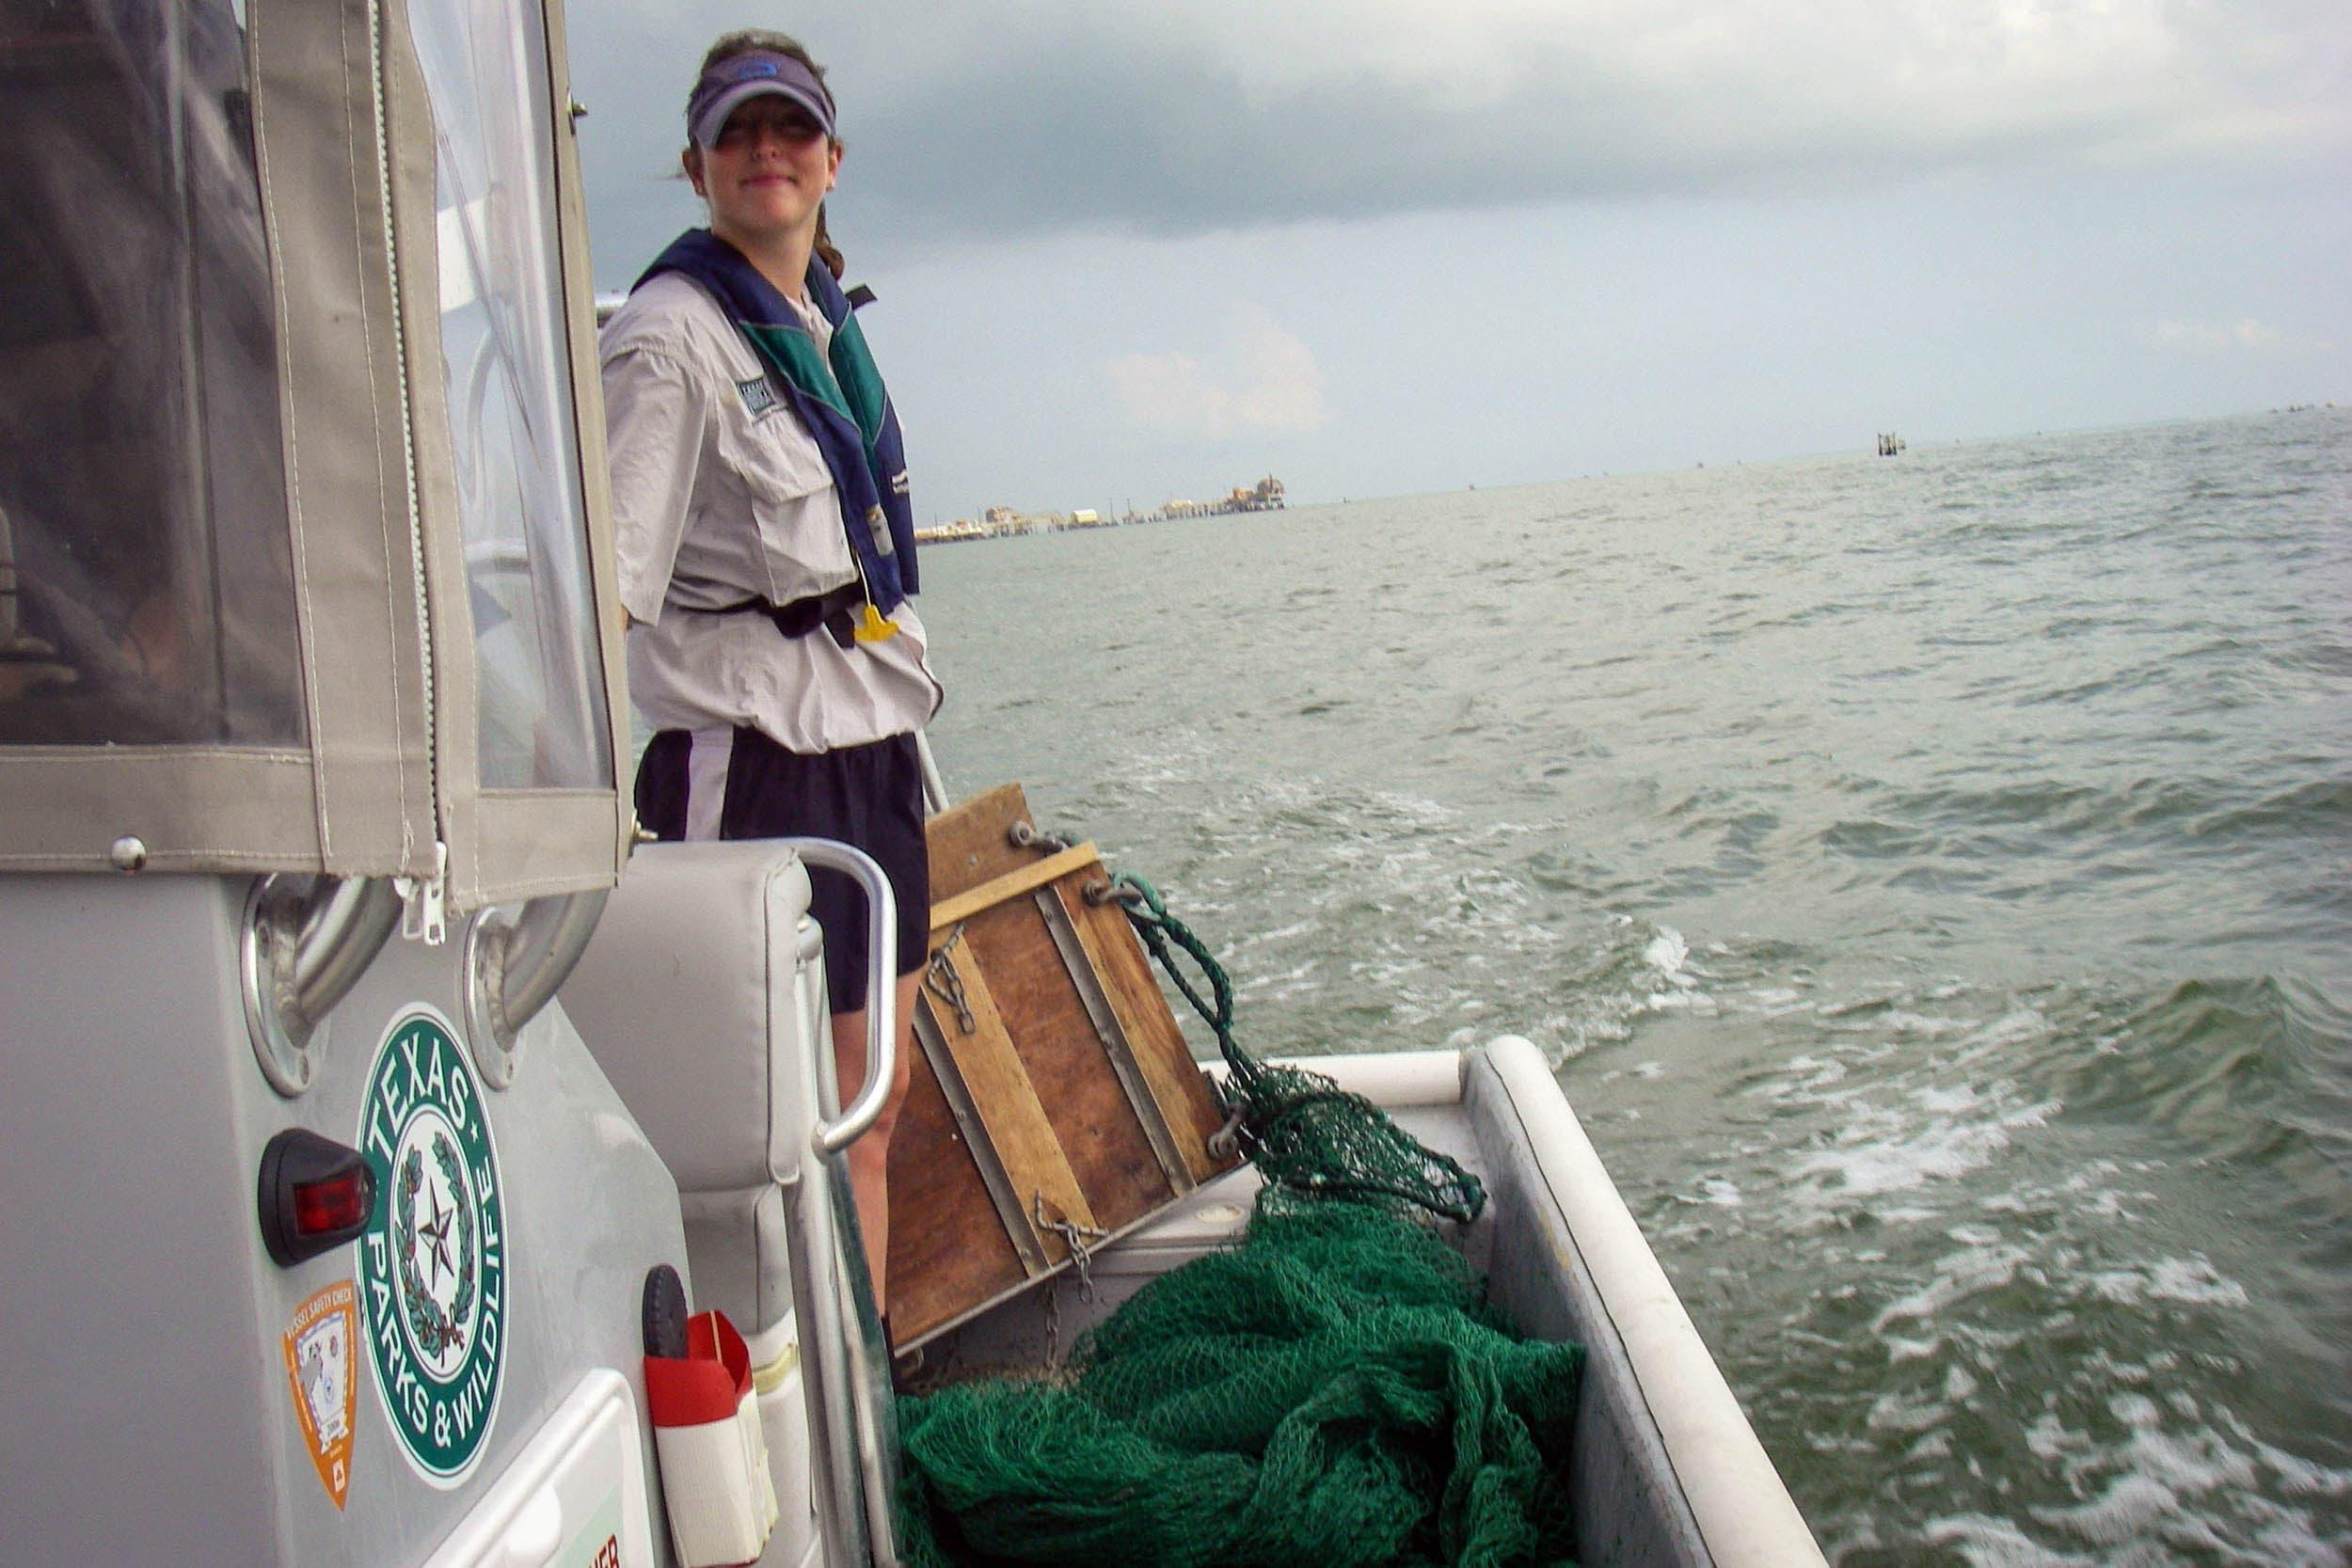 Danielle Crossen, research assistant, prepares to deploy a trawl from the TPWD boat